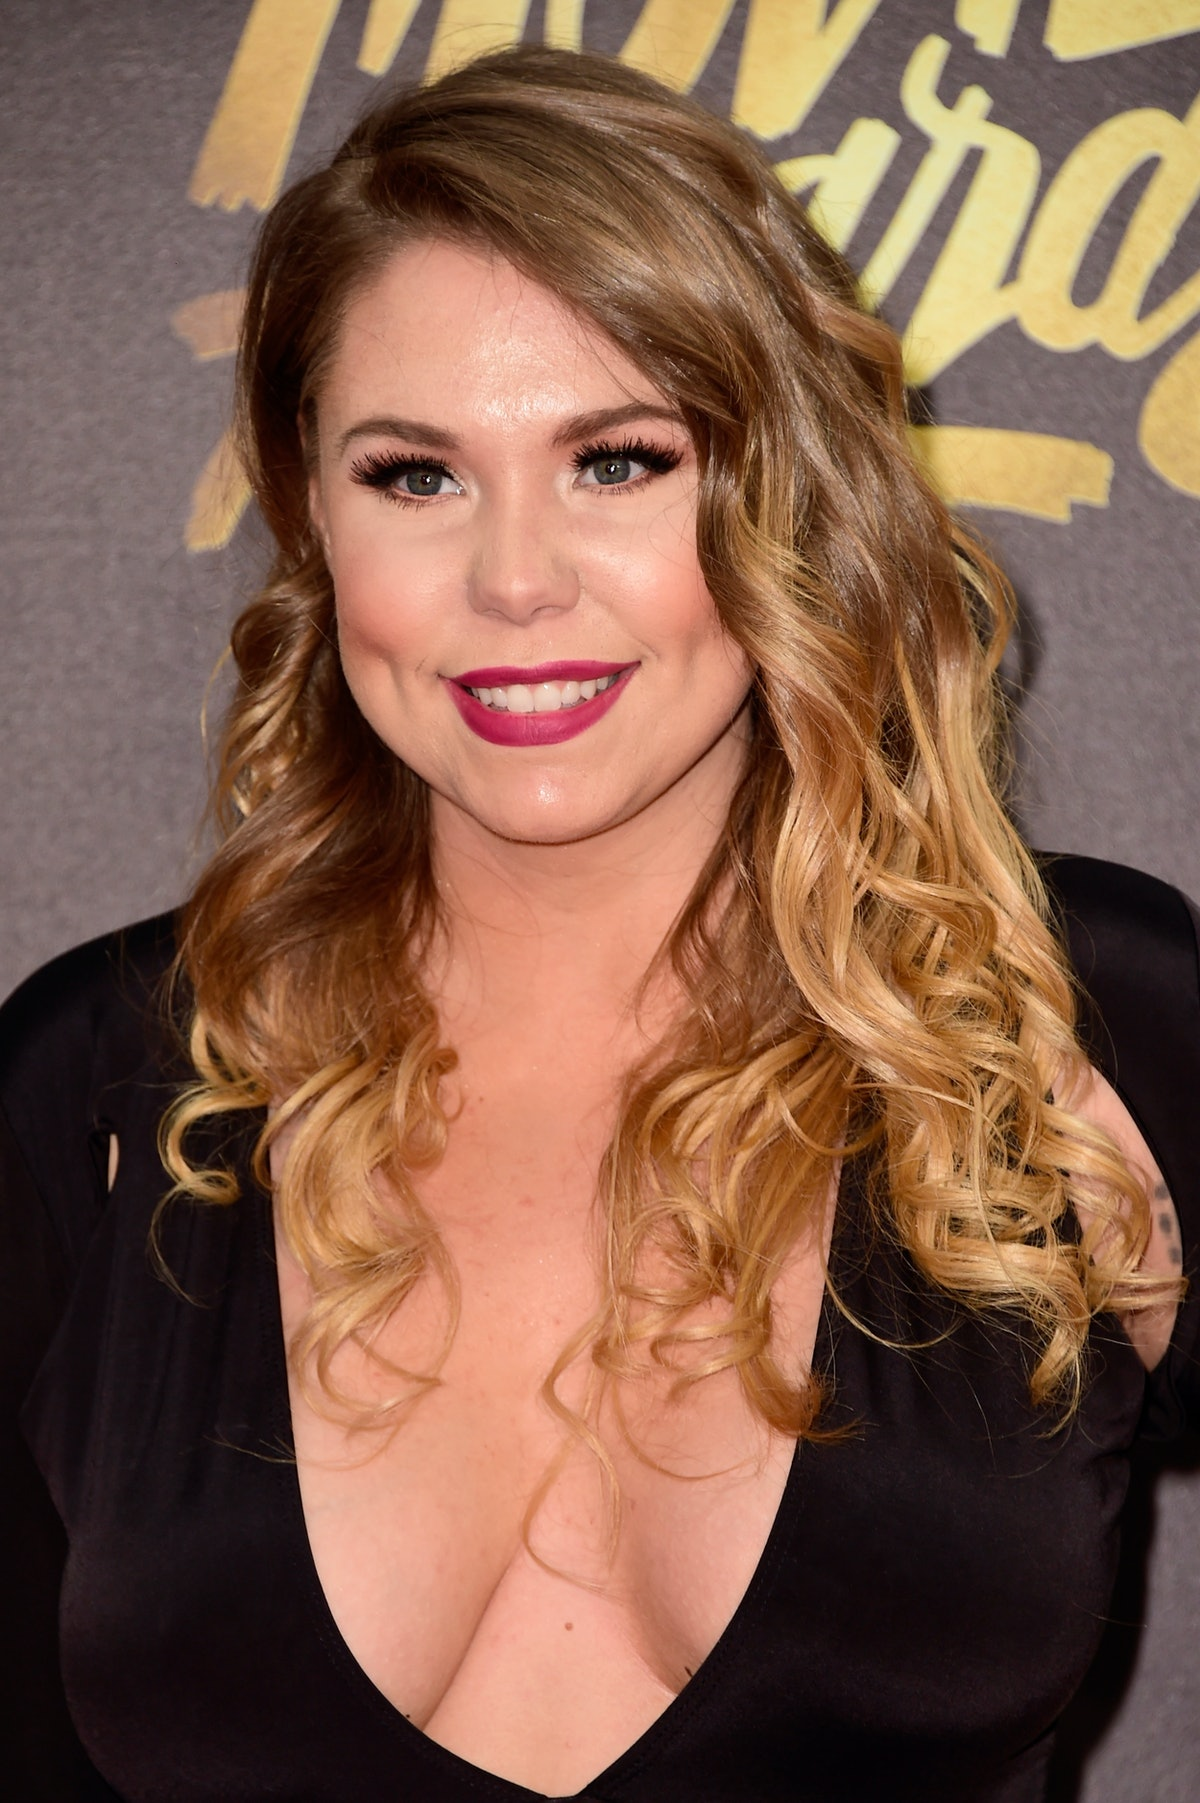 New York Times Bestselling Author Kailyn Lowry has her hands full with three boys to raise a starring role on MTVs Teen Mom 2 and a budding career that is taking